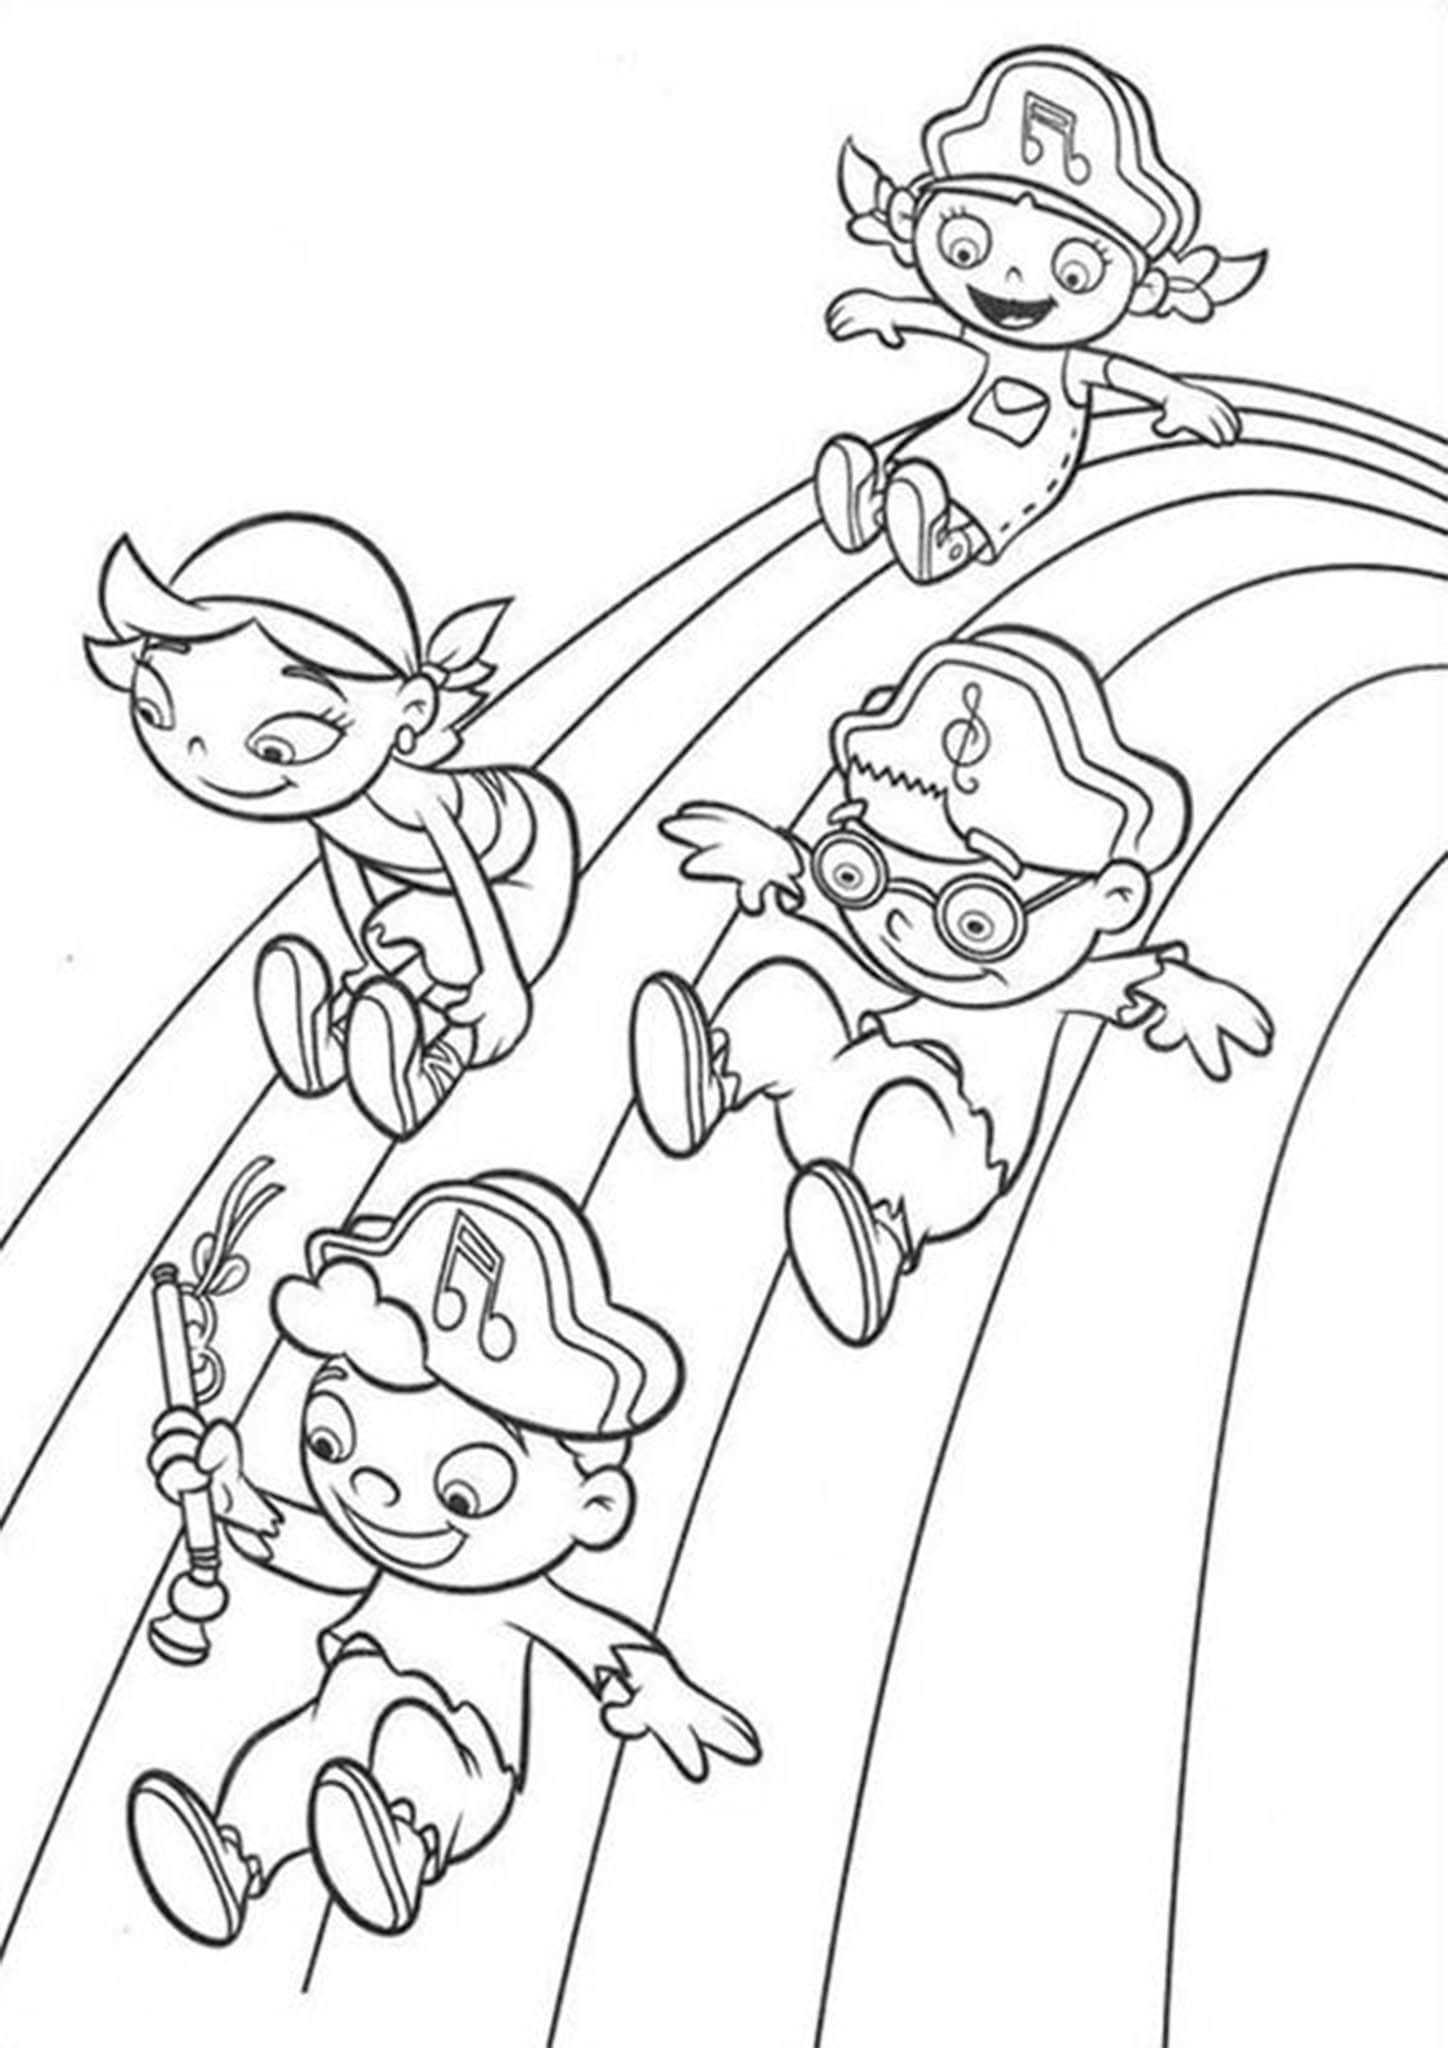 Free Easy To Print Rainbow Coloring Pages Coloring Pages Princess Coloring Pages Little Einsteins [ jpg ]